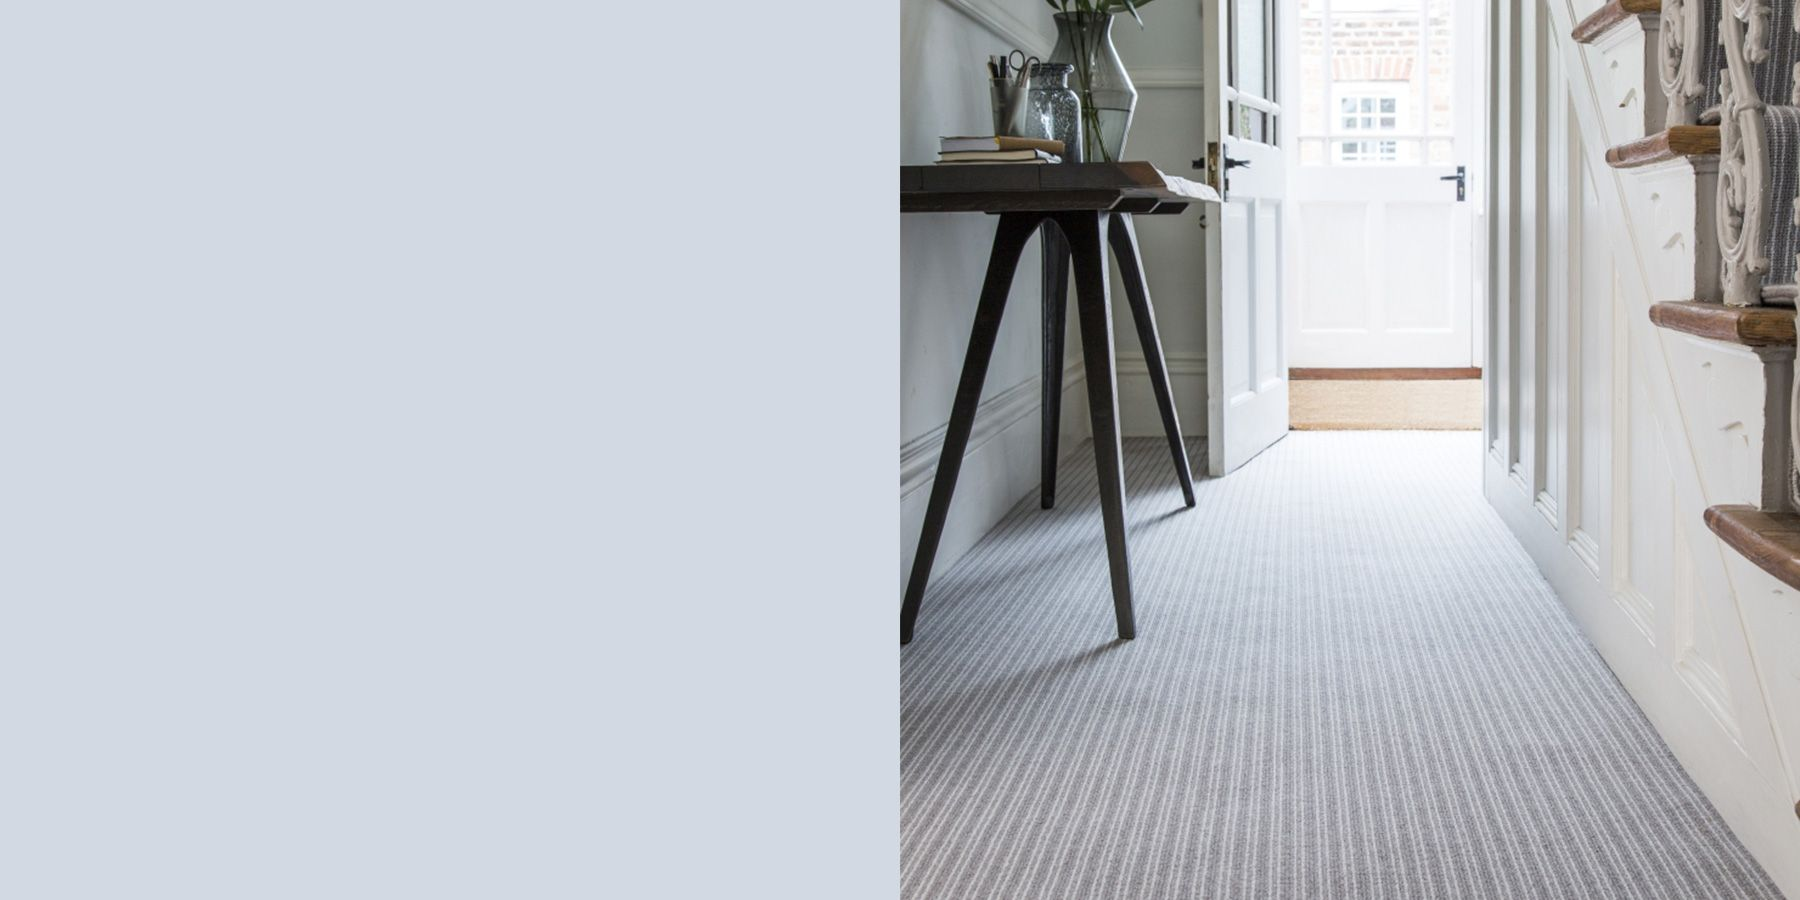 Floor skirting wide - the optimal solution for any apartment